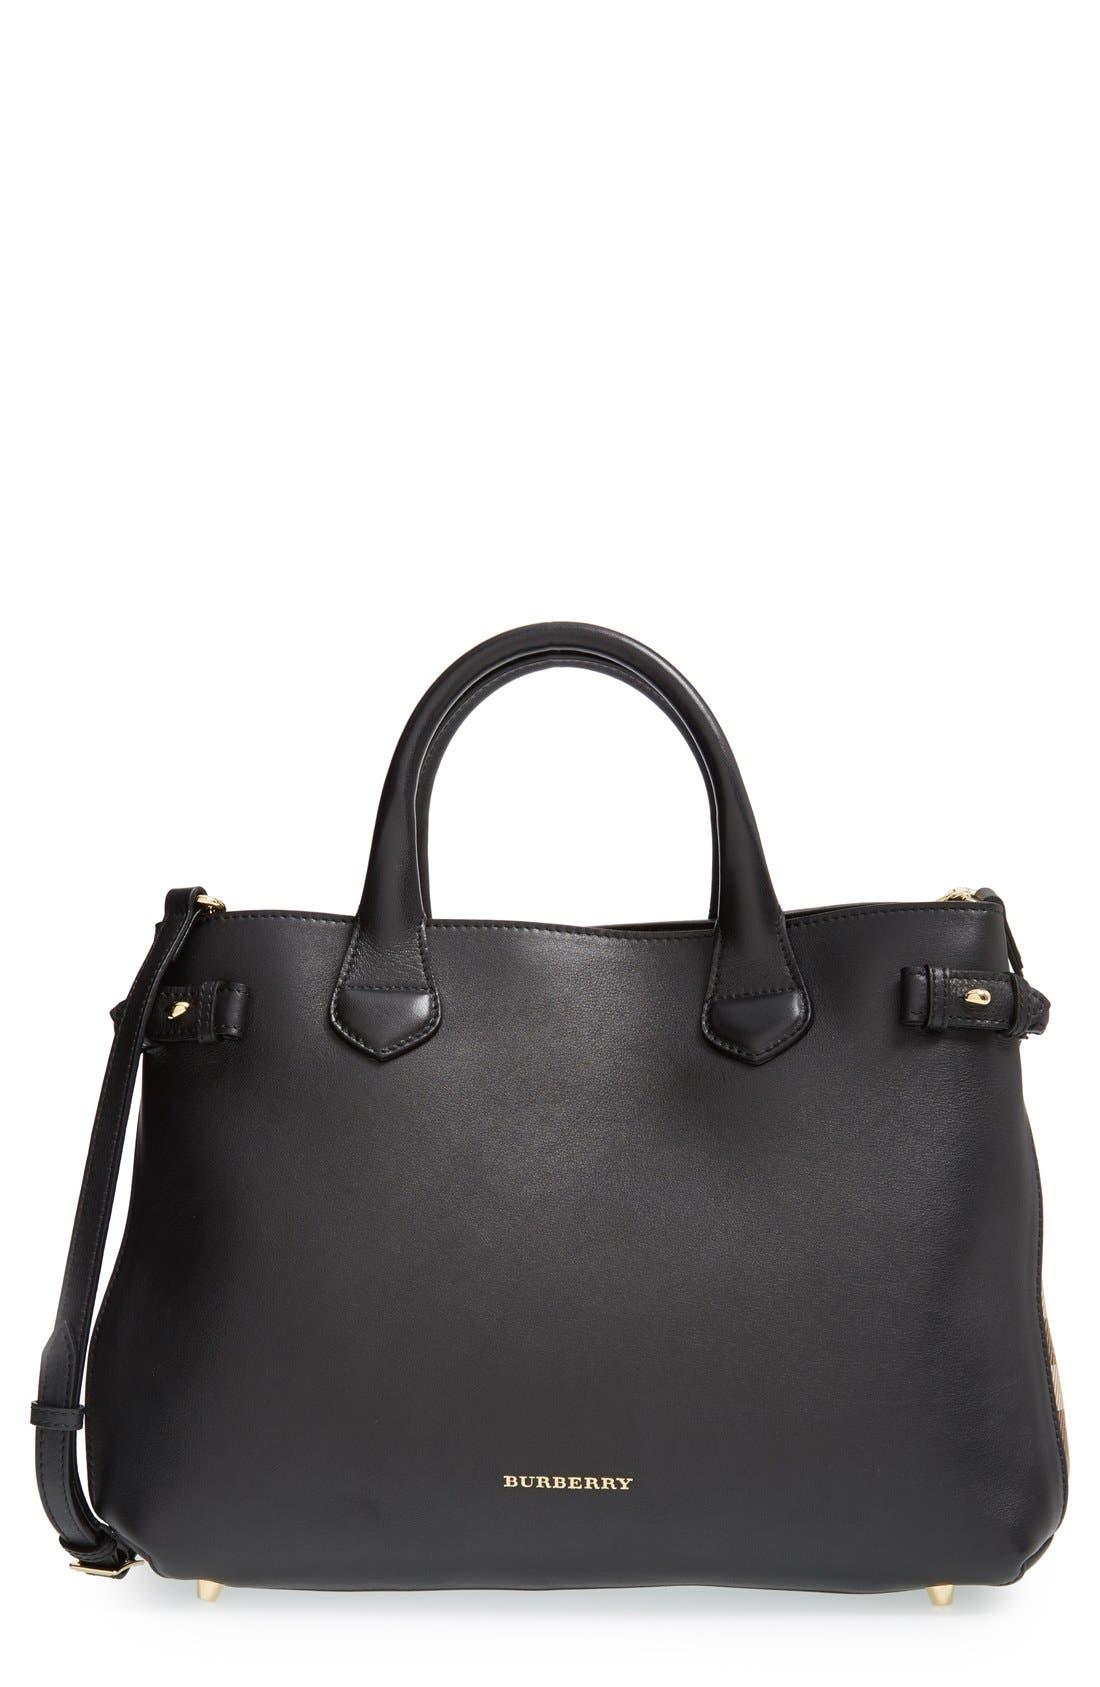 Main Image - Burberry 'Medium Banner' House Check Leather Tote